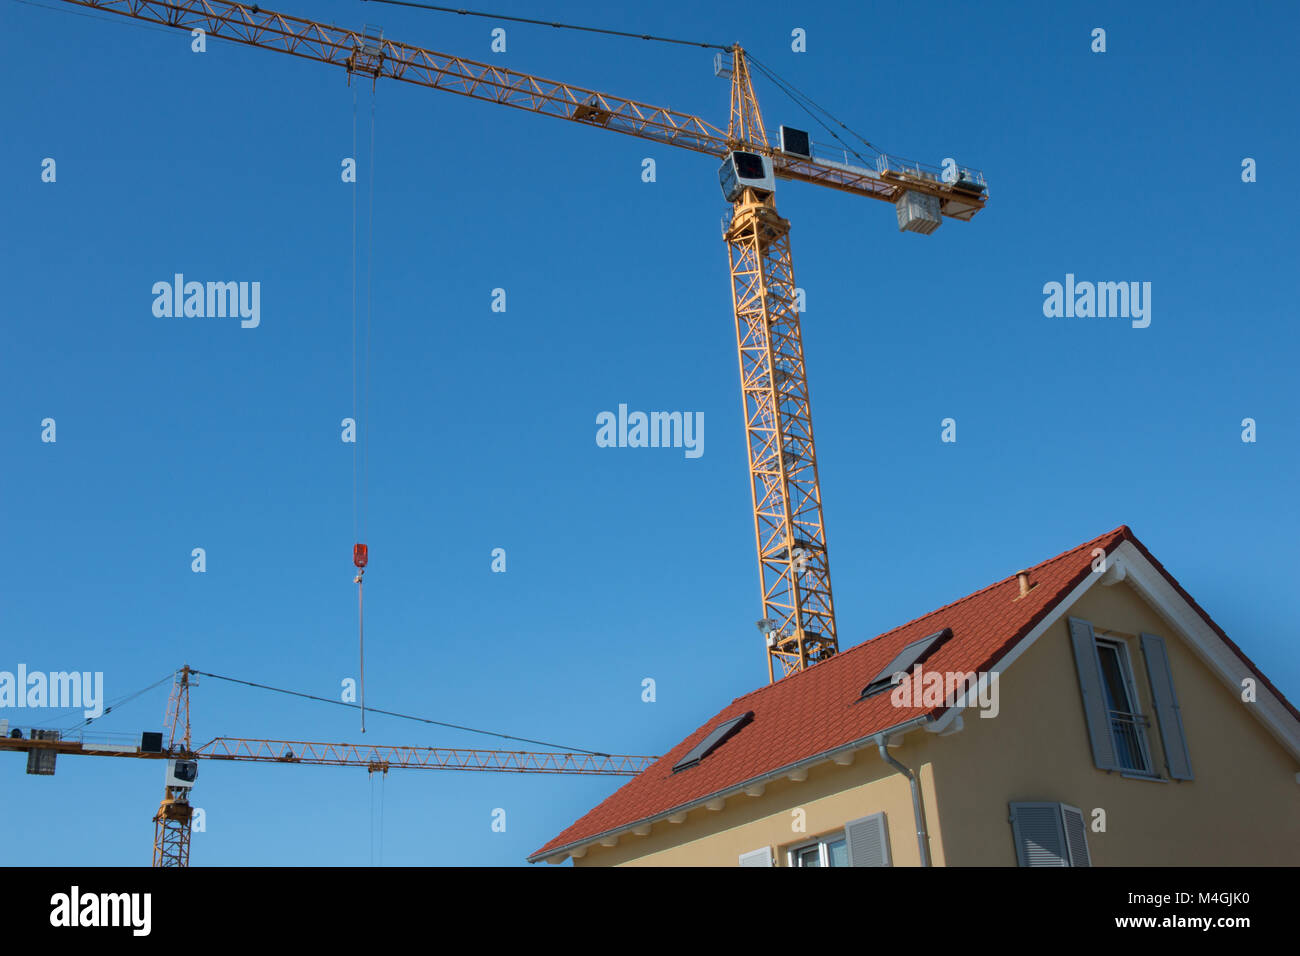 Yellow eracted crane over a red roof constructed facility in bluw sky at daylight, shot 2017 - Stock Image